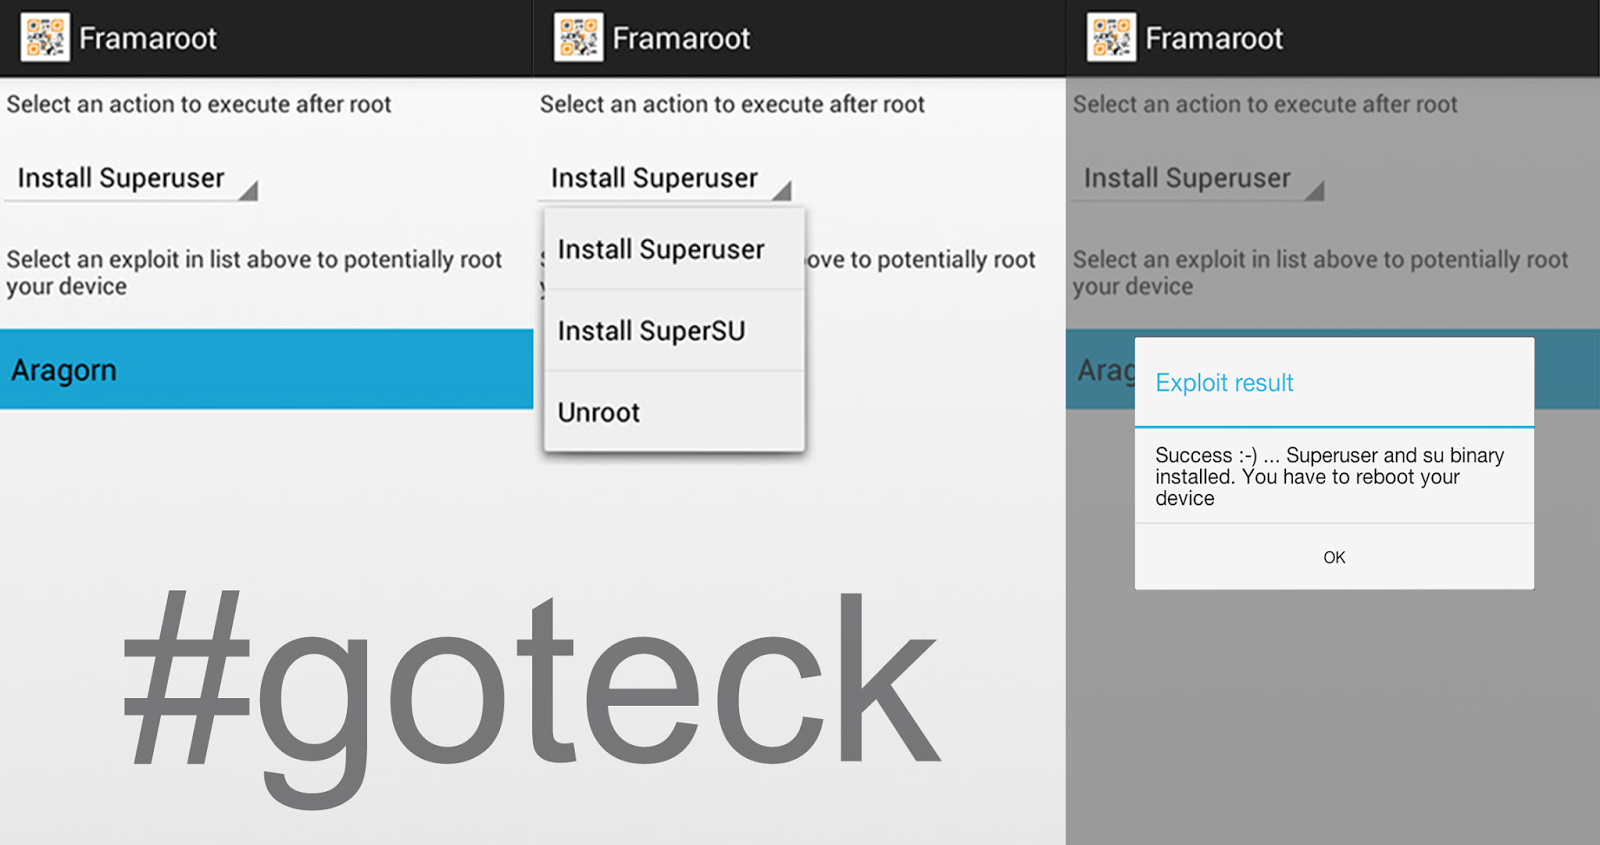 Root] How to root android by using framaroot ~ goteck